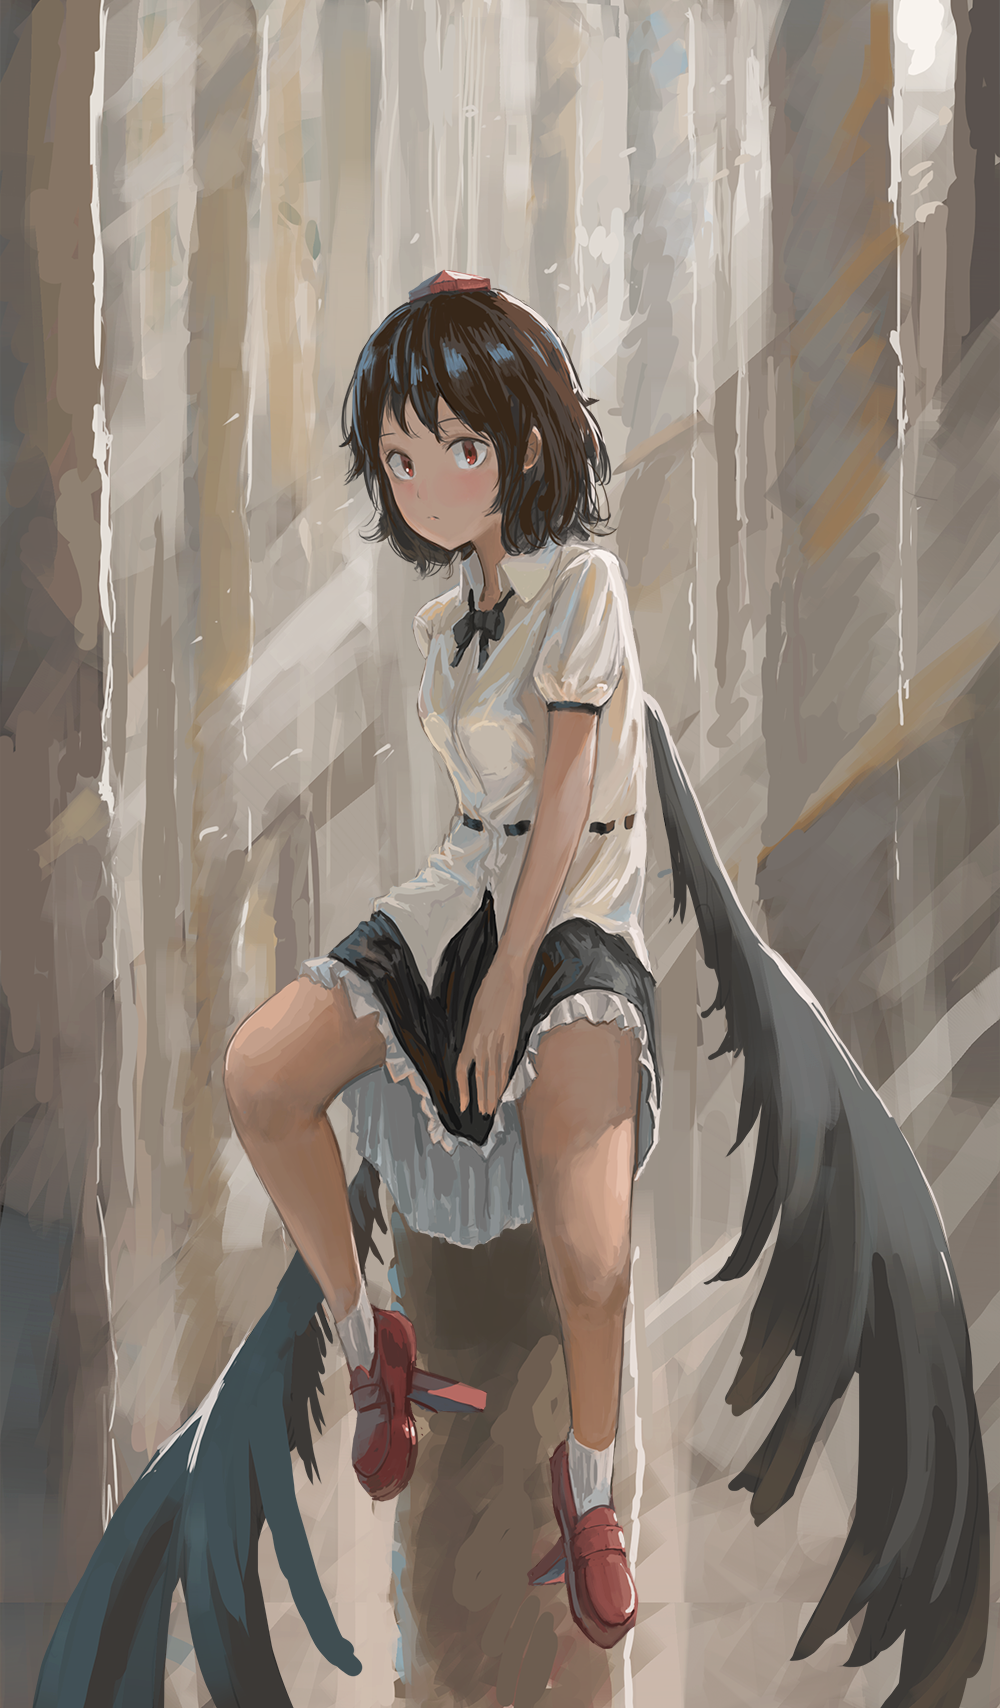 1girl belt between_legs black_hair black_neckwear black_skirt black_wings bobby_socks constricted_pupils day expressionless feathered_wings fjsmu forest geta hand_between_legs hat highres legs_apart looking_at_viewer nature neck_ribbon outdoors petticoat puffy_short_sleeves puffy_sleeves red_eyes red_footwear red_headwear ribbon shameimaru_aya shirt short_hair short_sleeves skirt skirt_hold socks solo tengu-geta tokin_hat touhou untucked_shirt white_legwear white_shirt wings